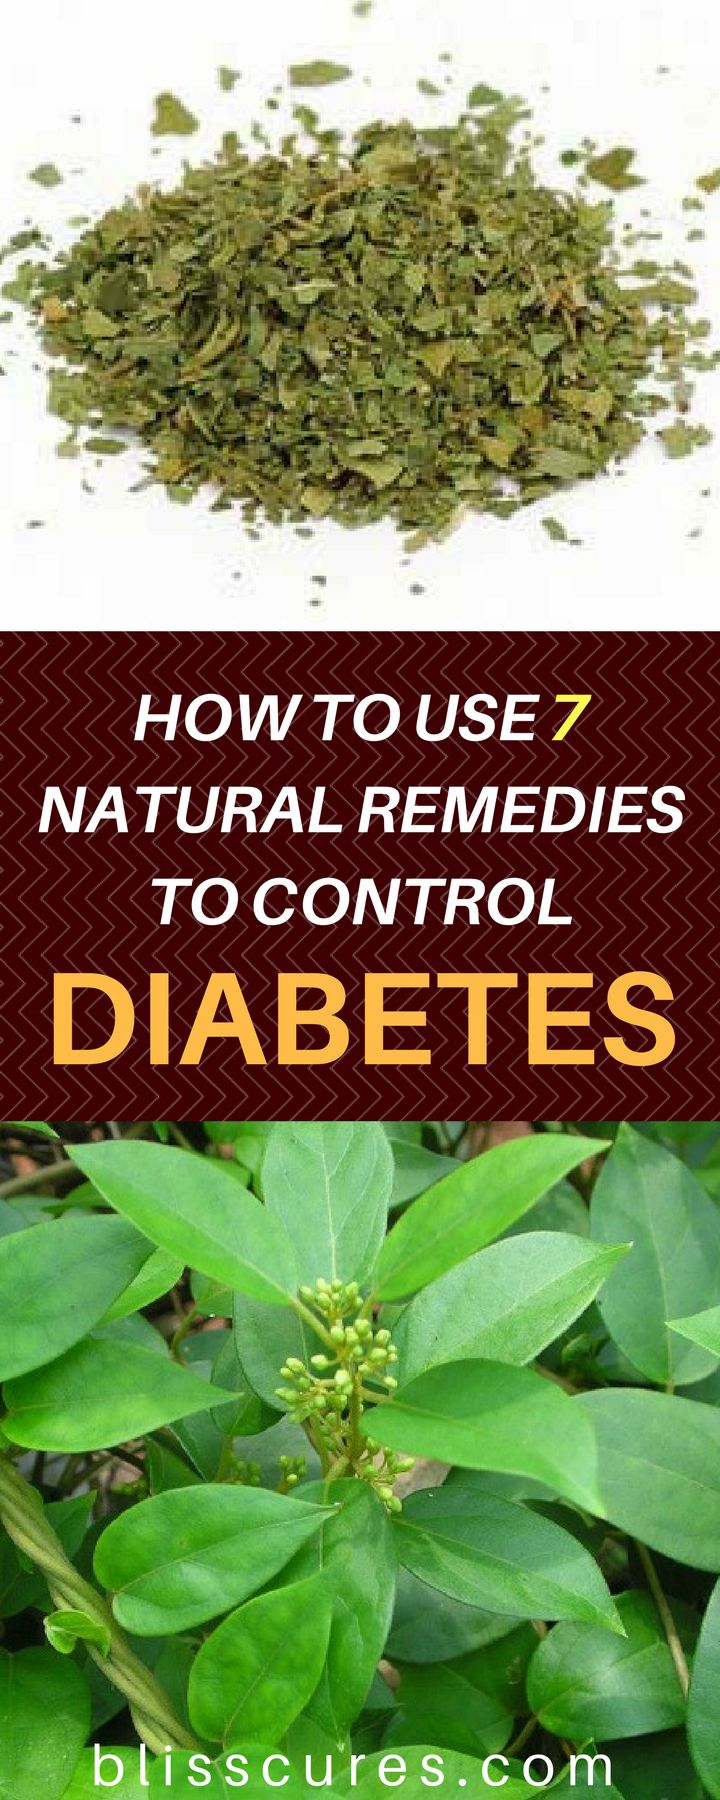 HOW TO USE 7 NATURAL REMEDIES TO CONTROL